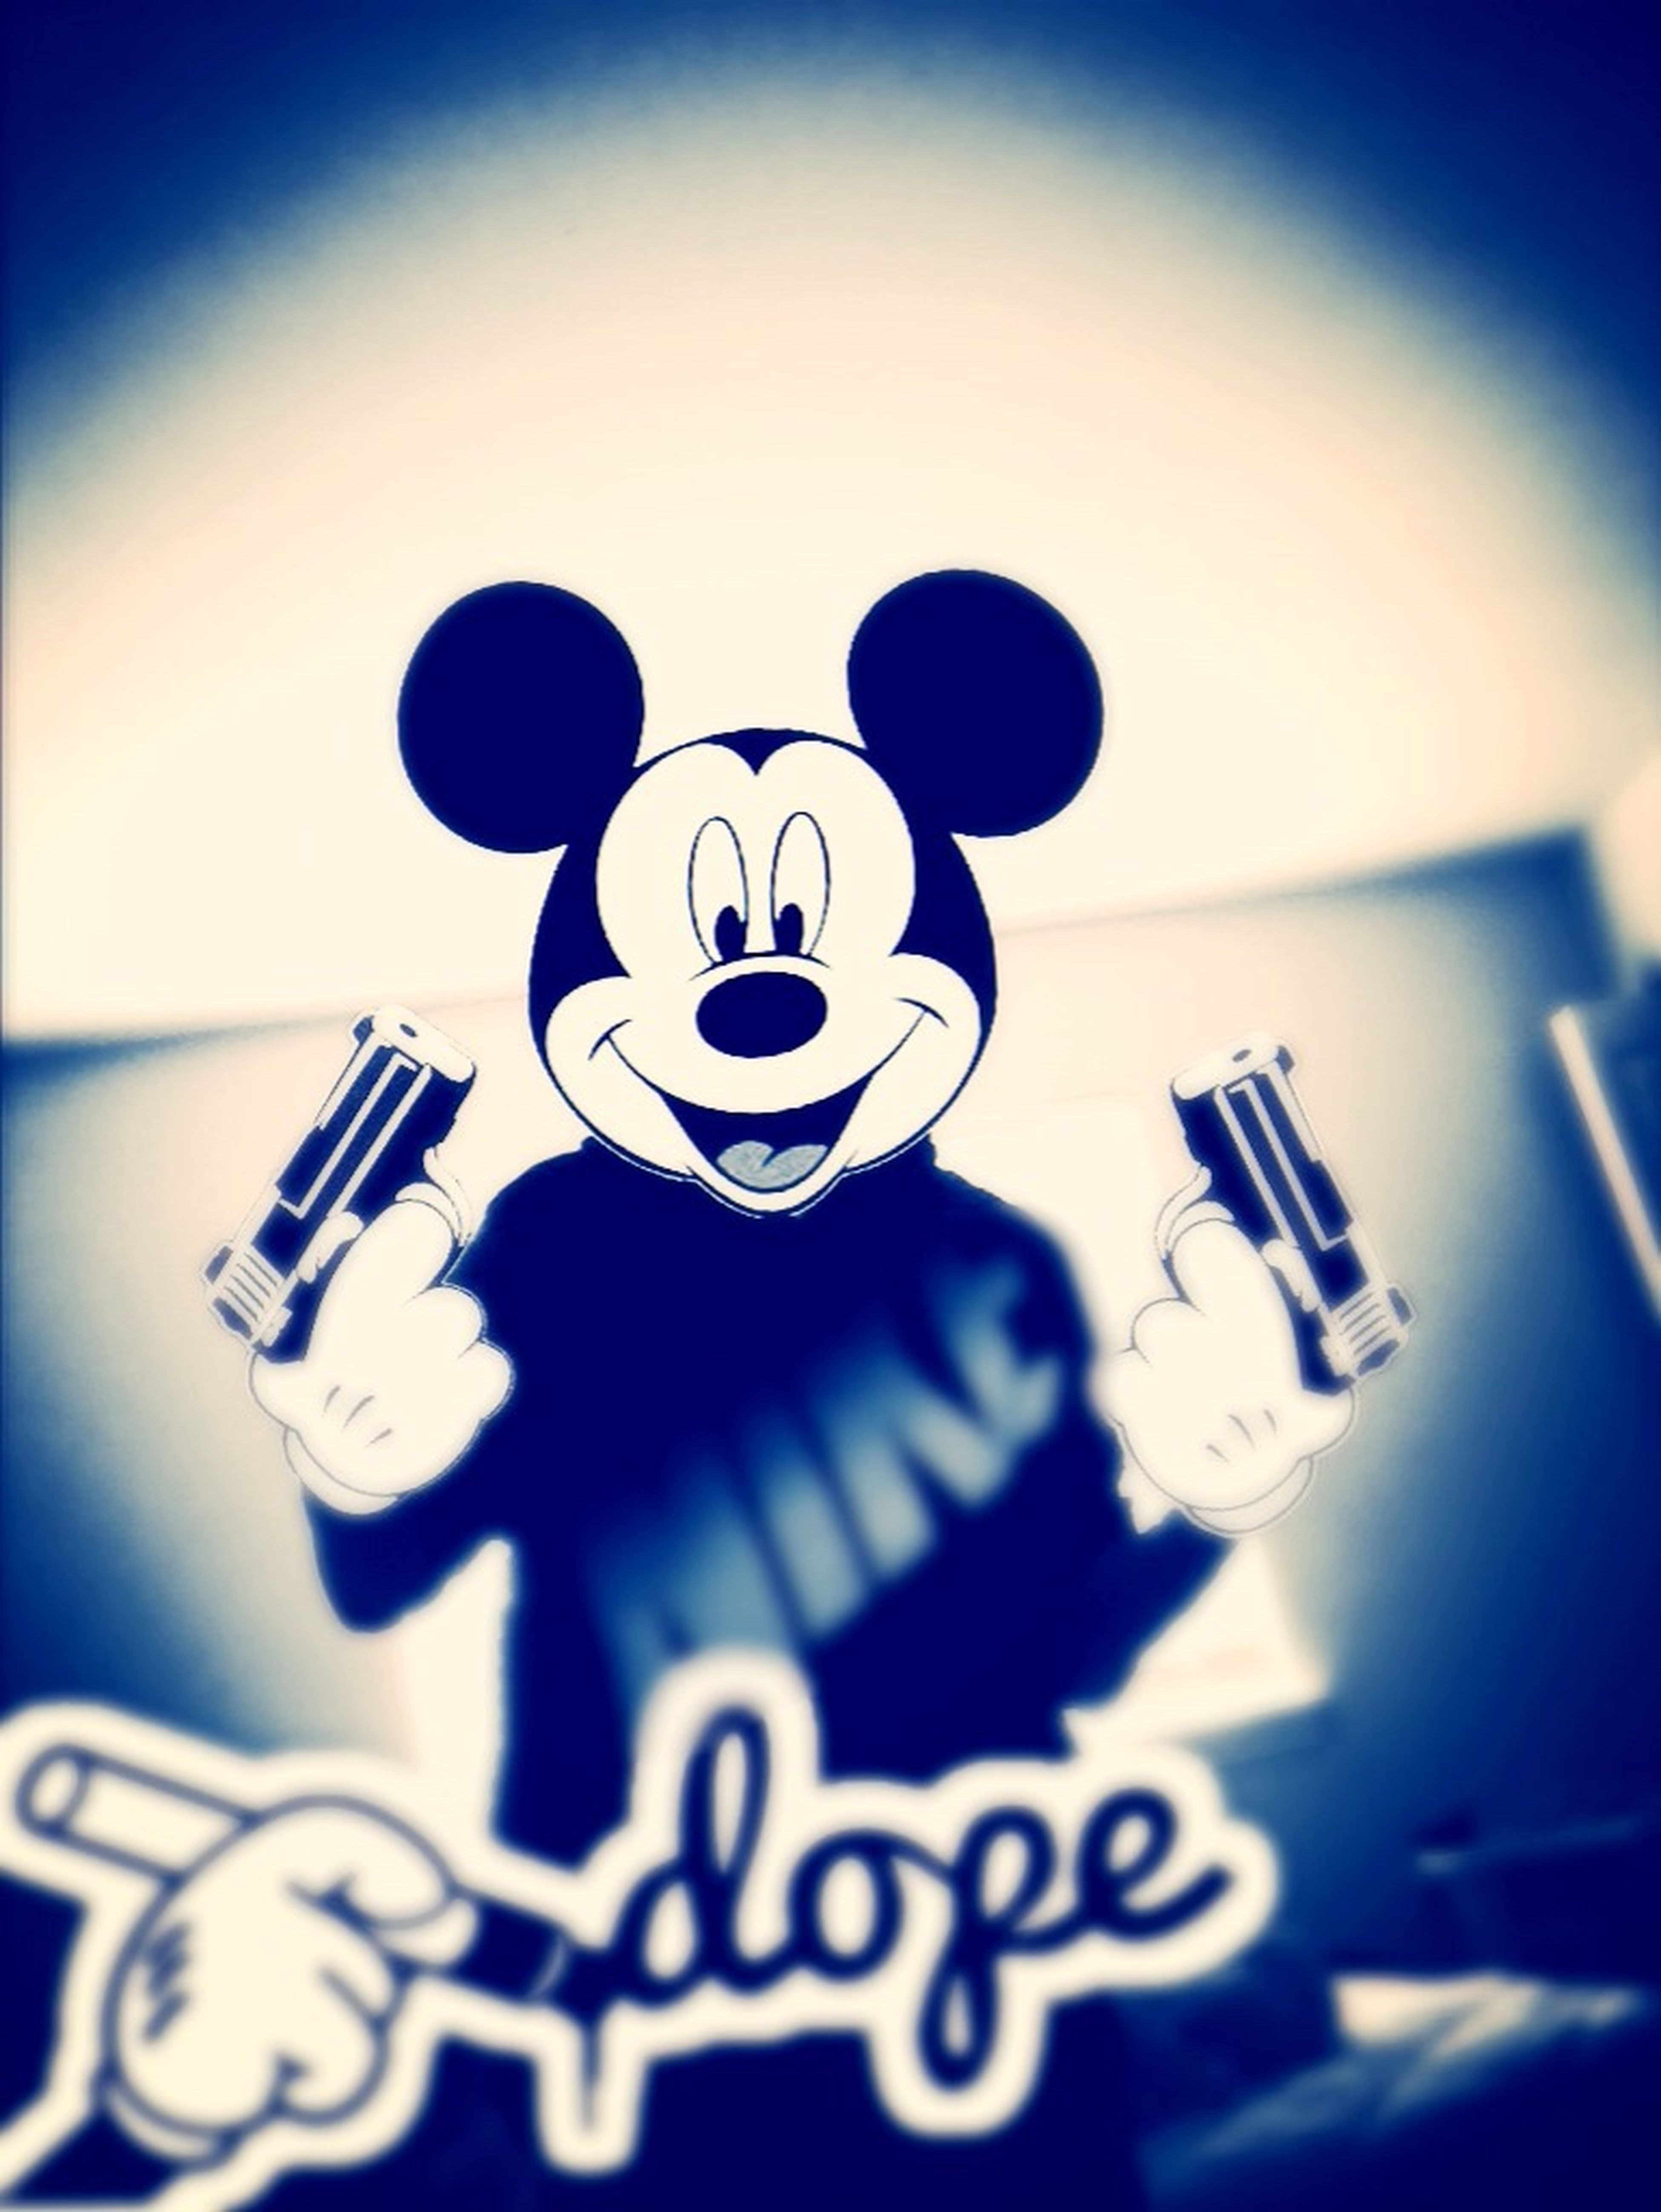 Swag Mickey DOPE